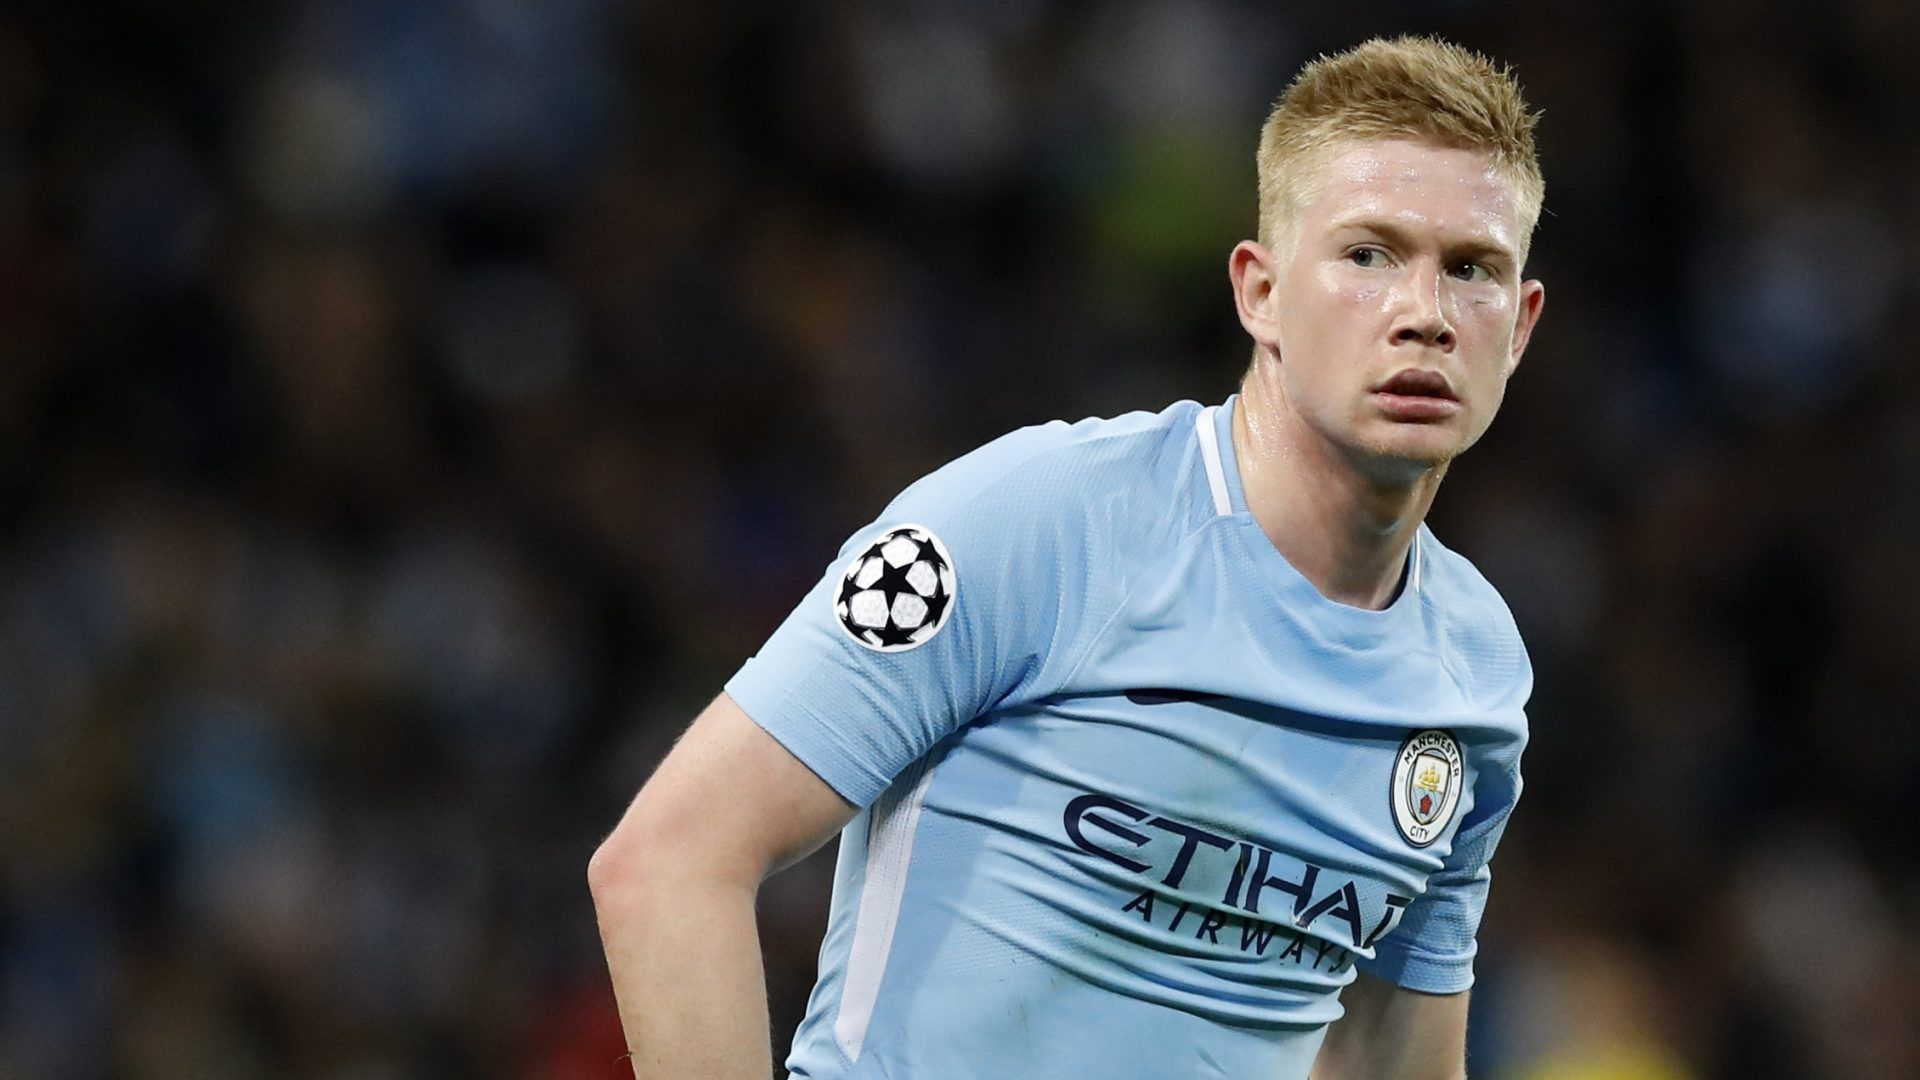 Kevin De Bruyne There S No Rush To Give Me A New City Deal Kevin De Bruyne Manchester City Manchester City Football Club